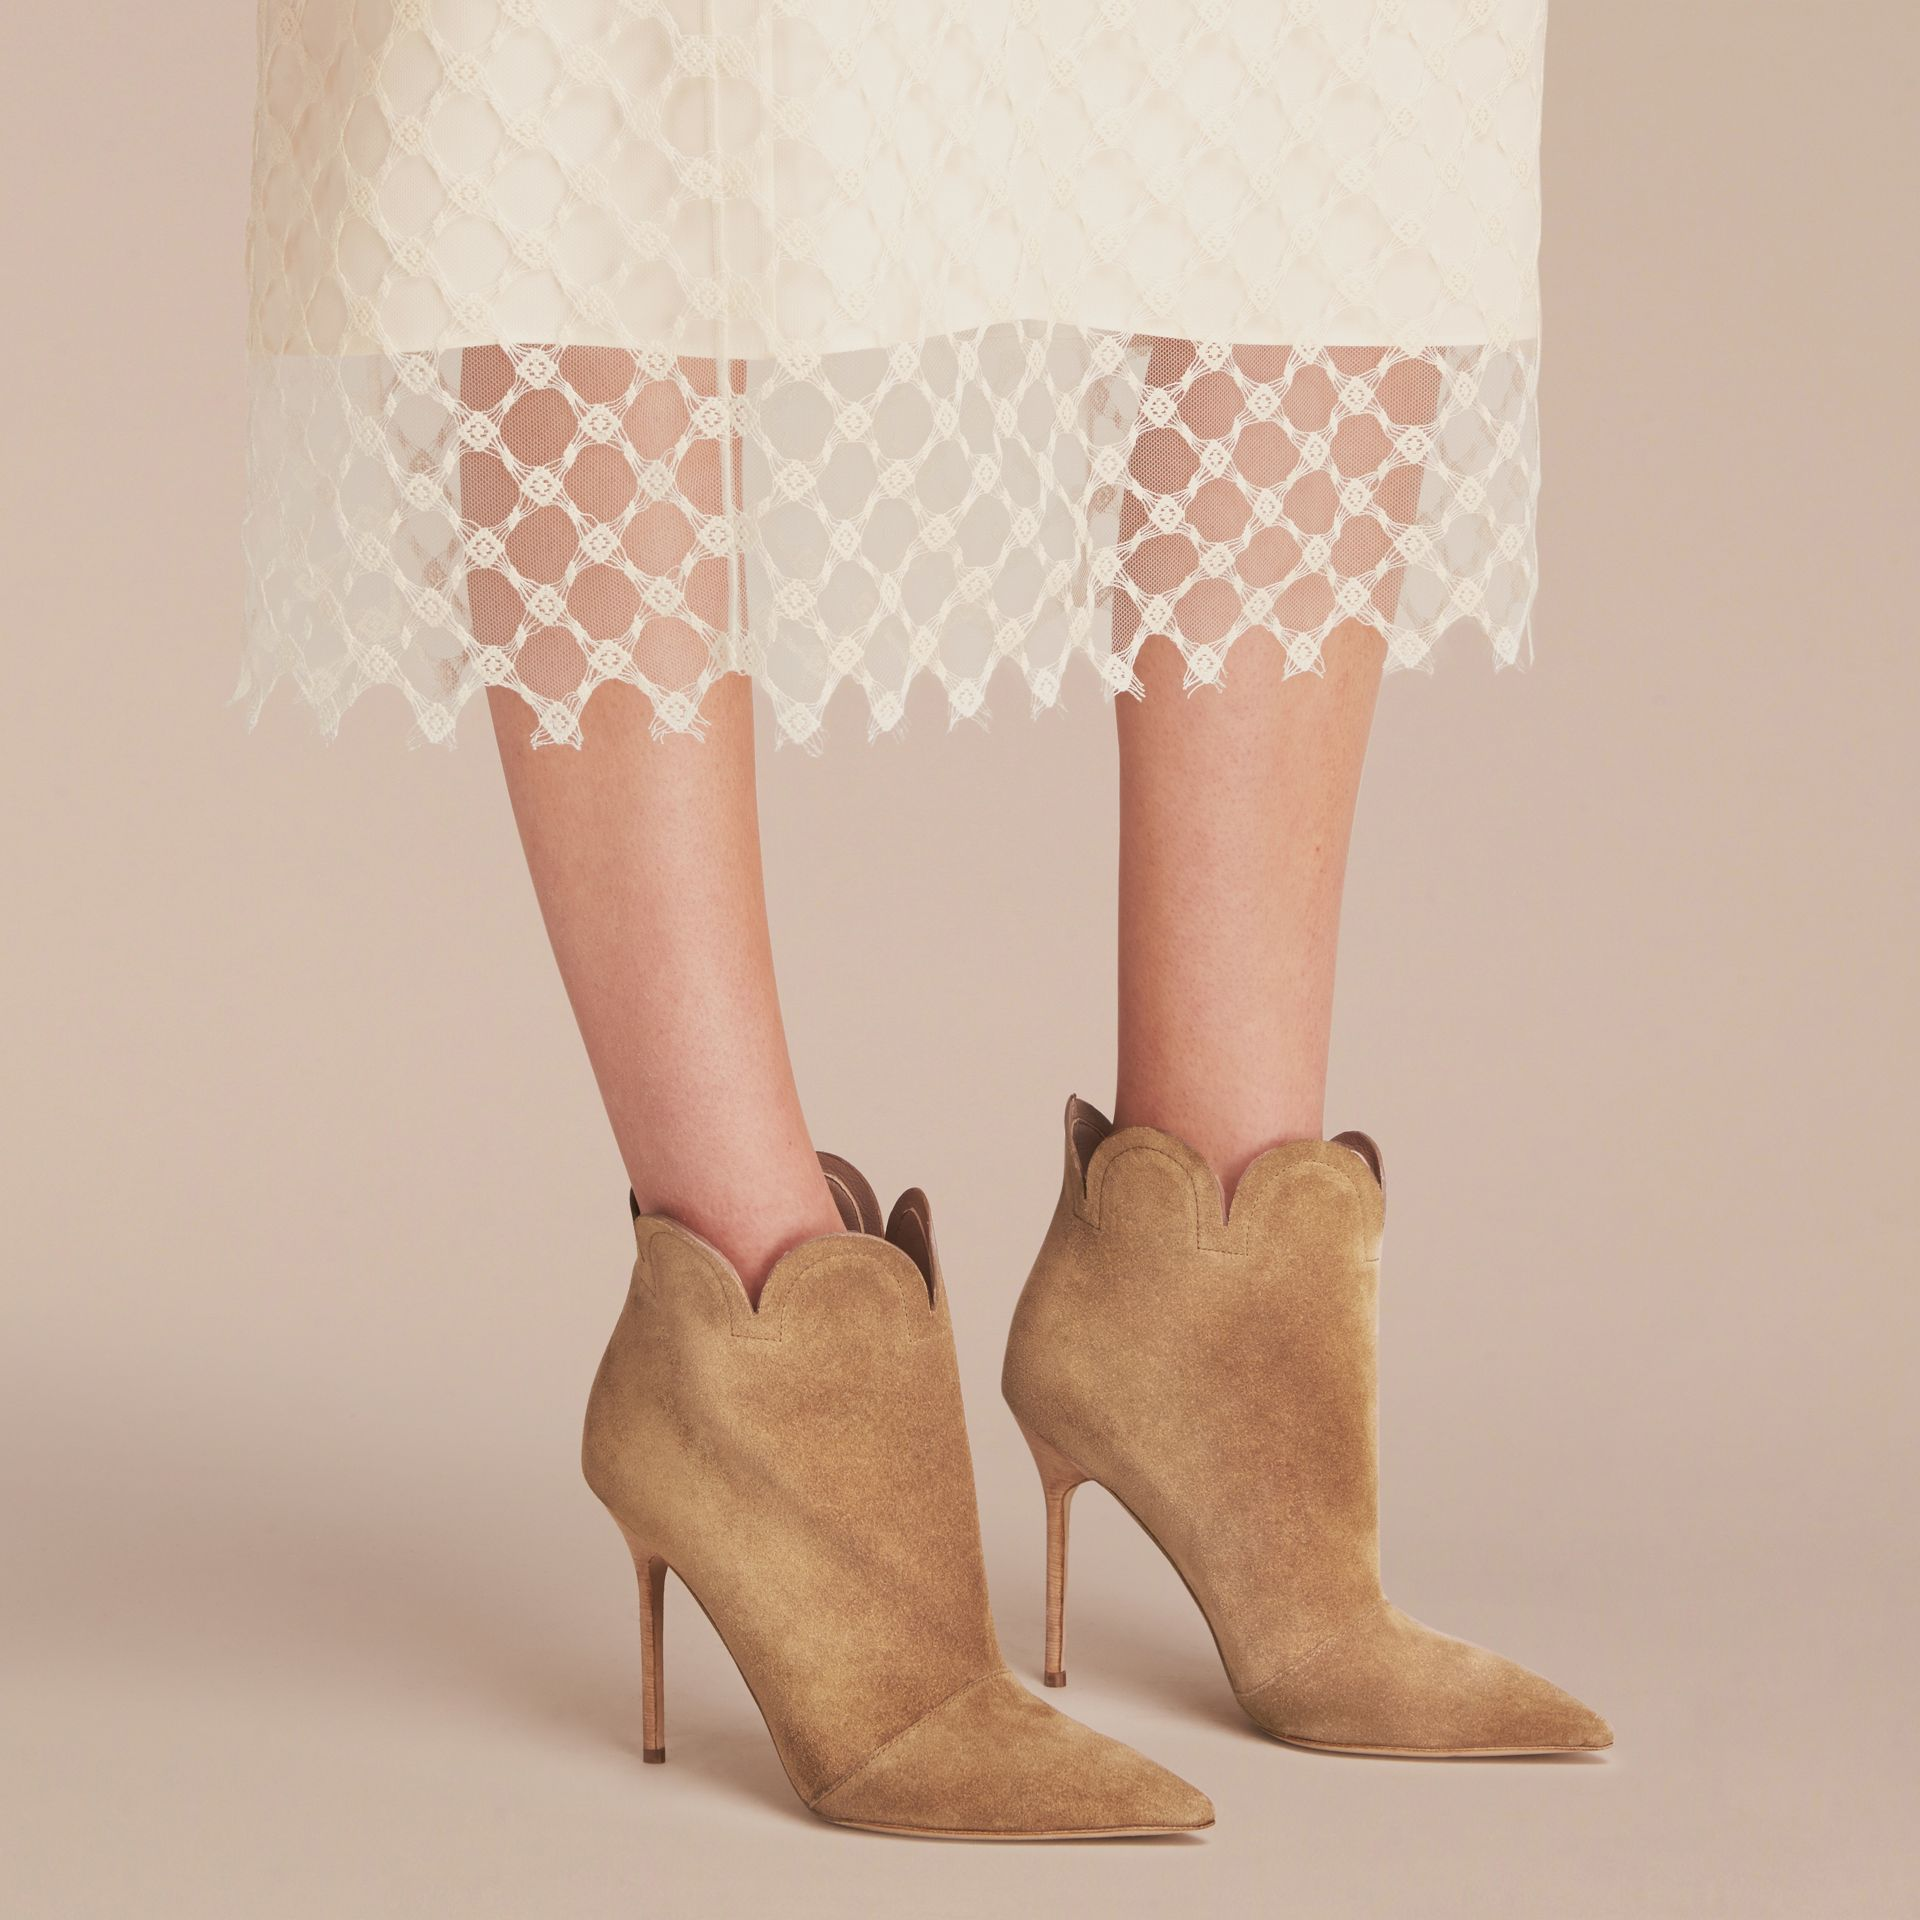 Scalloped Suede Ankle Boots in Sandstone - Women | Burberry - gallery image 3